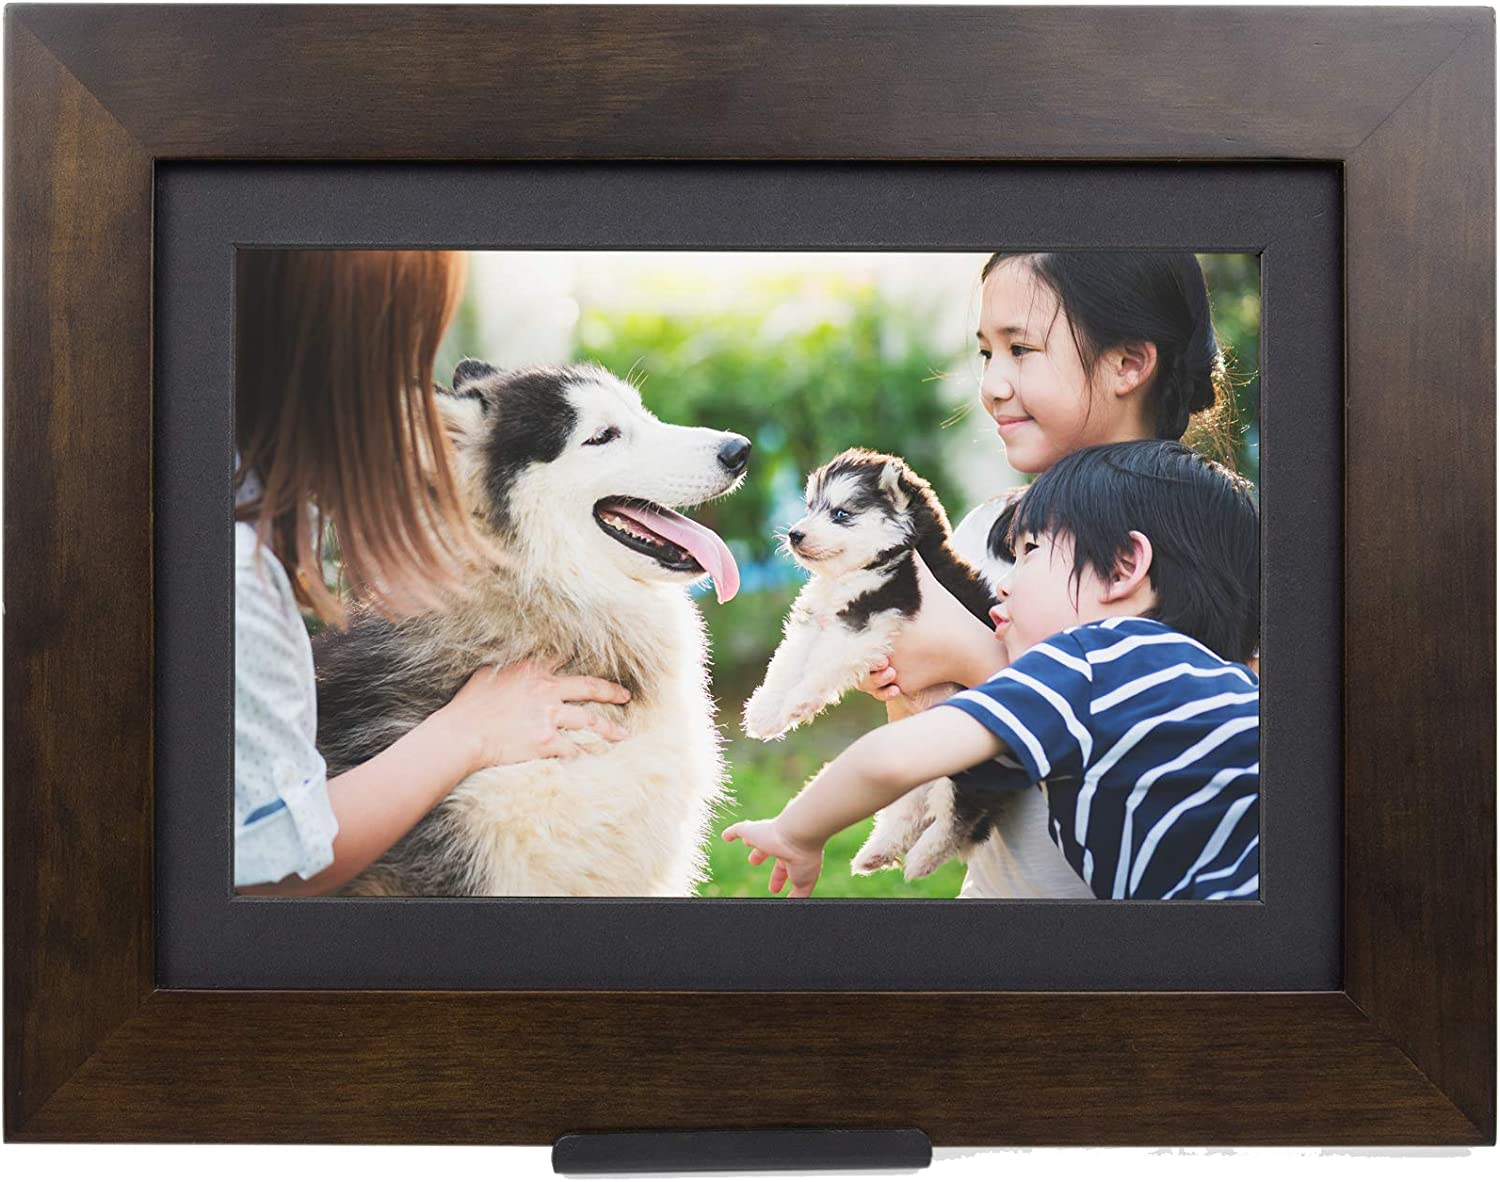 "PhotoShare Friends and Family Smart Frame Digital Photo Frame, 1-5 Day Shipping, Send Pics from Phone to Frame, WiFi, 8 GB, Holds Over 5,000 Photos, HD, 1080P, iOS, Android (10.1"", Espresso)"